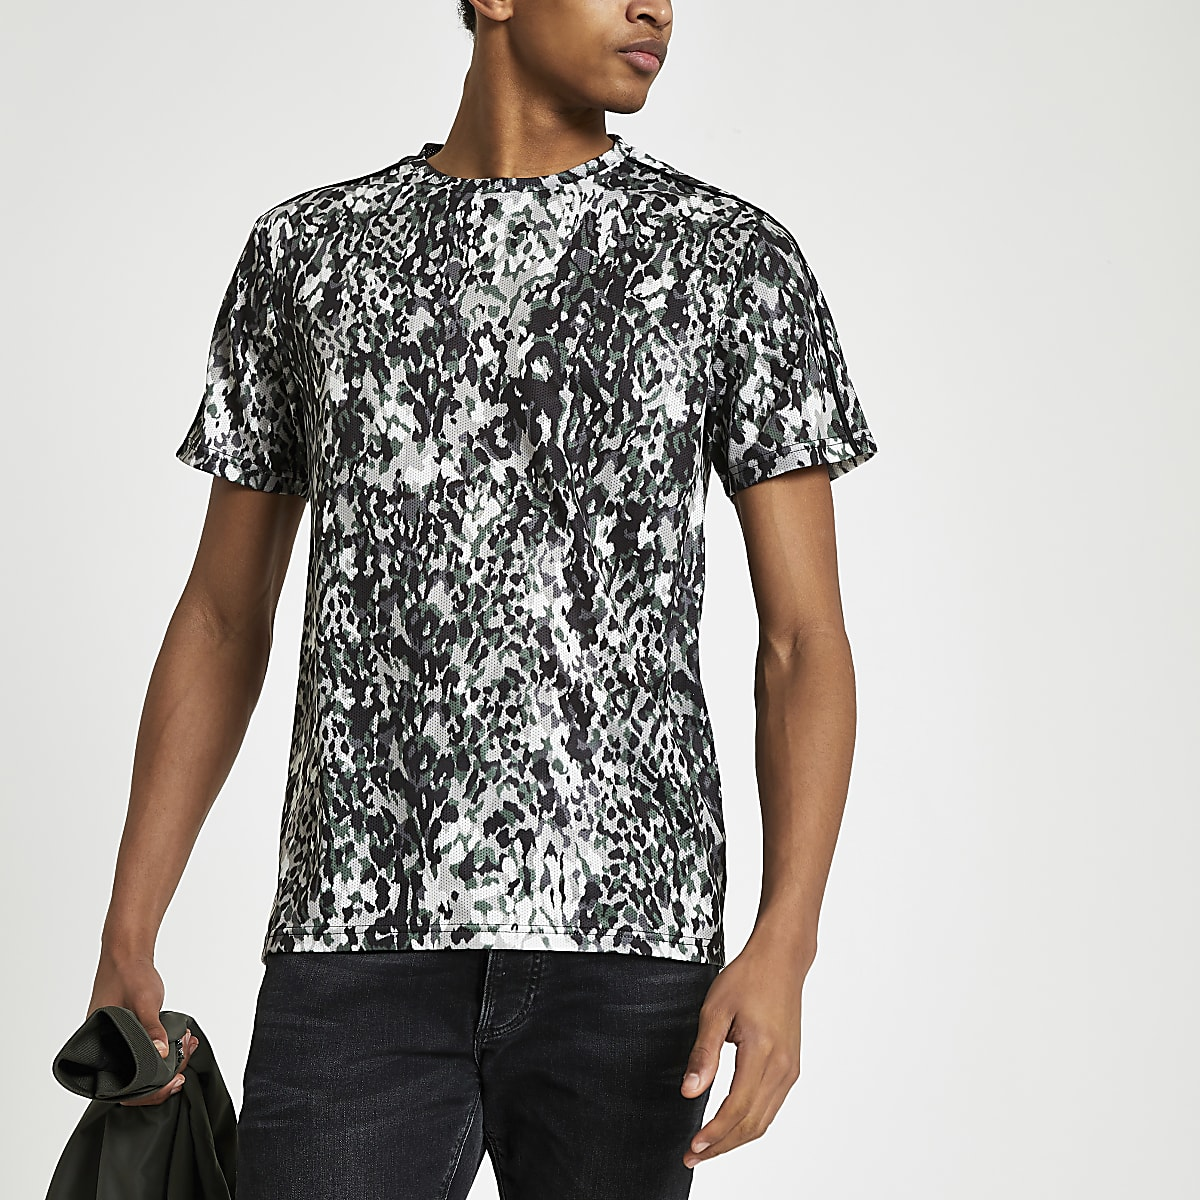 Black leopard print slim fit mesh T-shirt